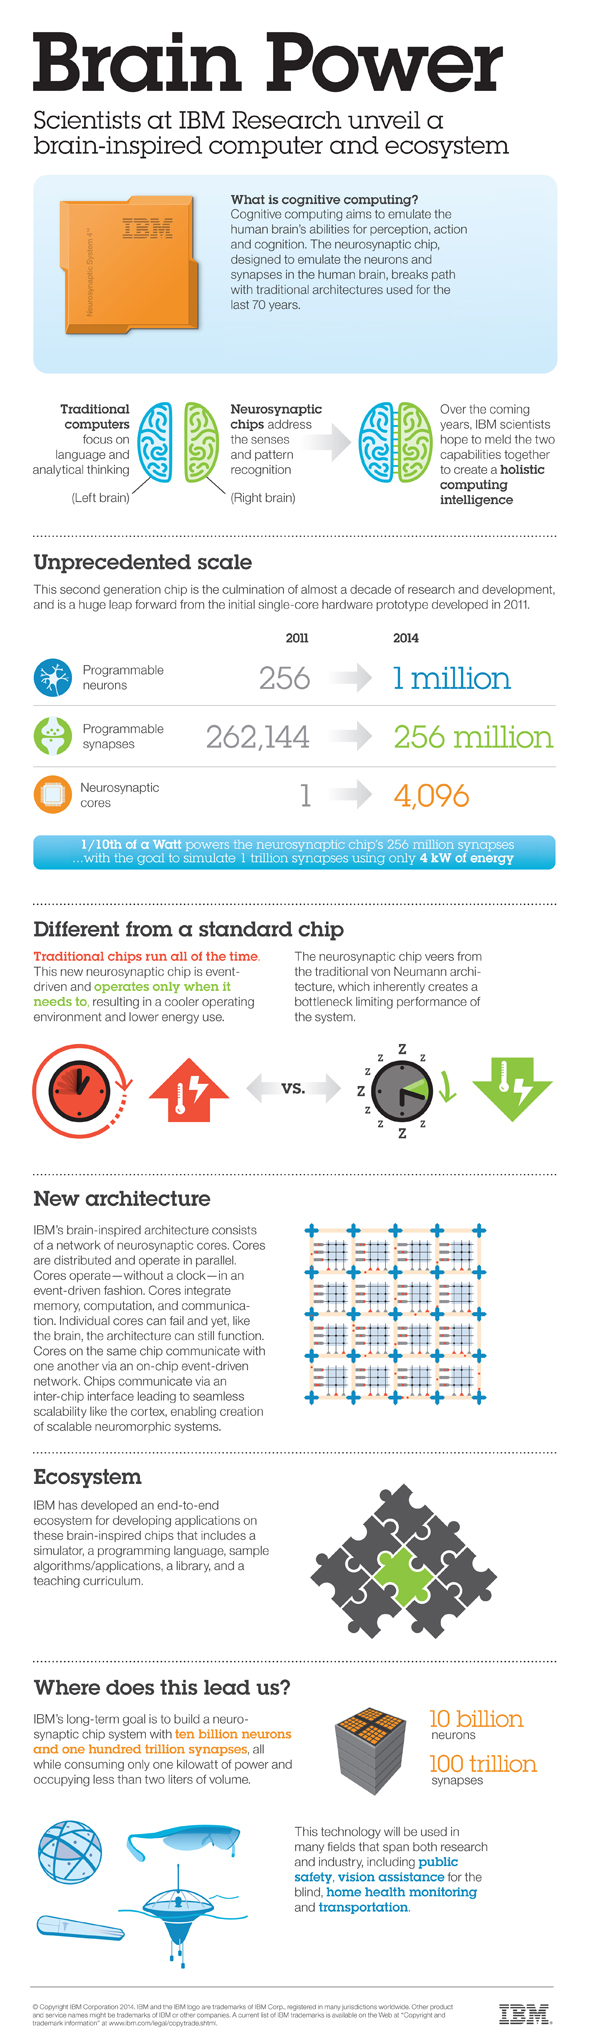 synapse chip infographic_07-30-14a